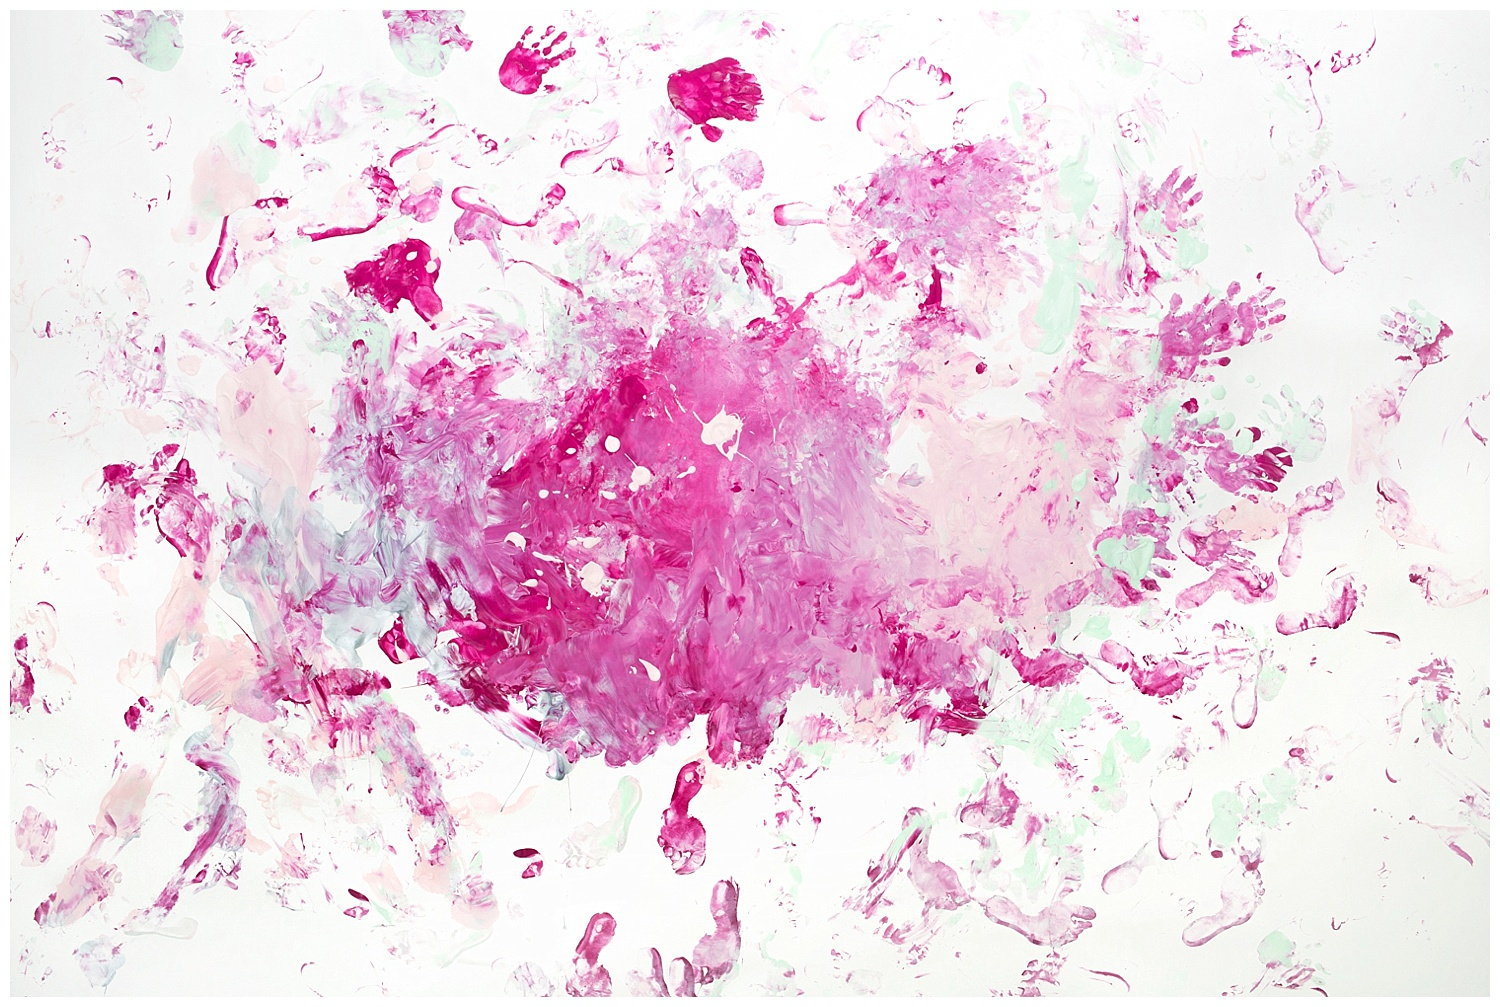 Andrea-Burolla-Photography-Denver-childrens-photographer-paint-session_abstract-pink-fine-art-mint-green-handprints-footprints.jpg